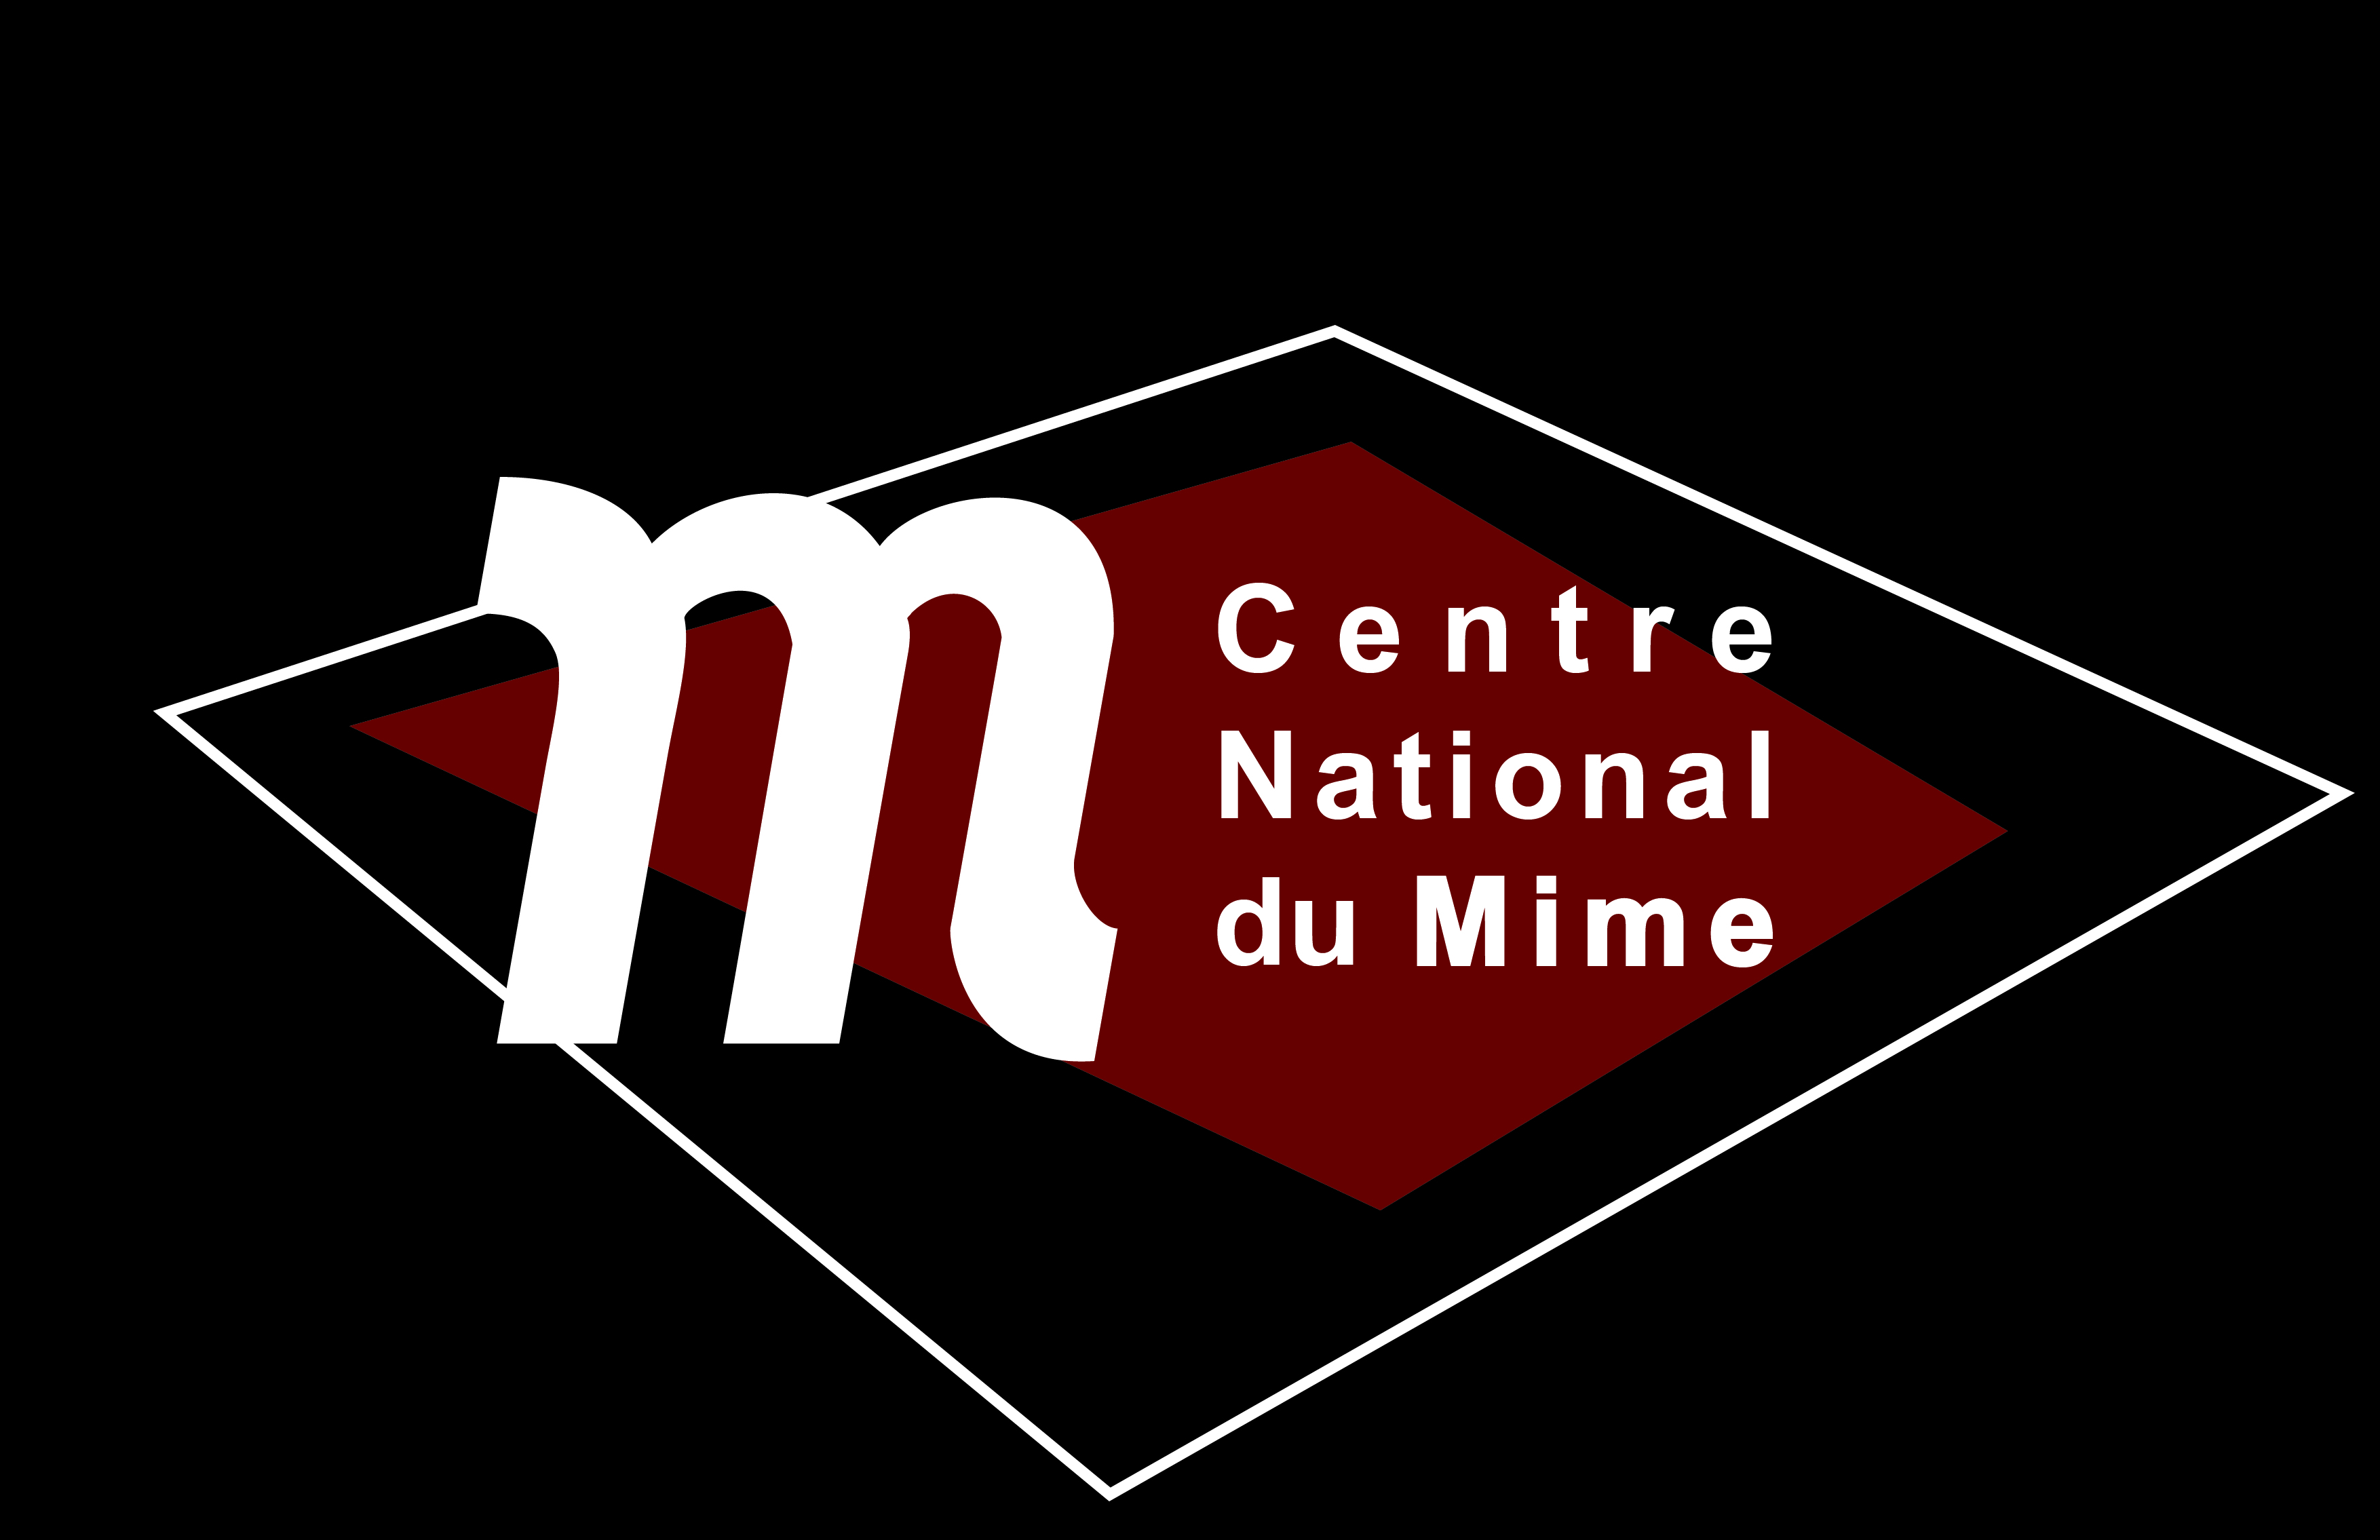 logo Centre National du Mime